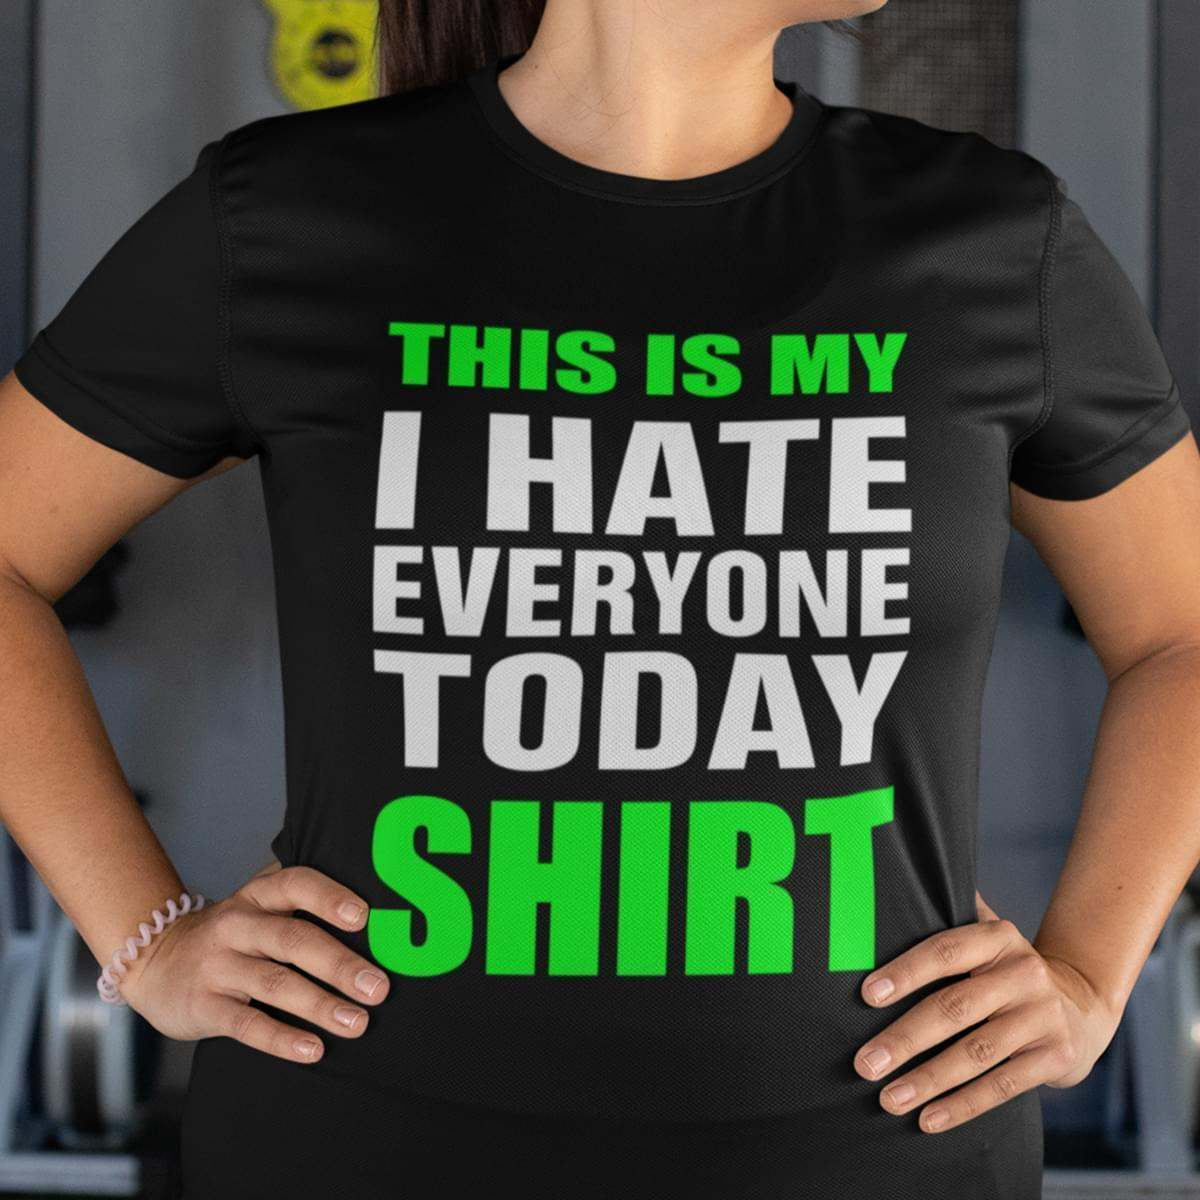 This Is My I Hate Everyone Today Shirt T Shirt - Custom Graphic Tee - Christmas Gift Idea T-Shirt